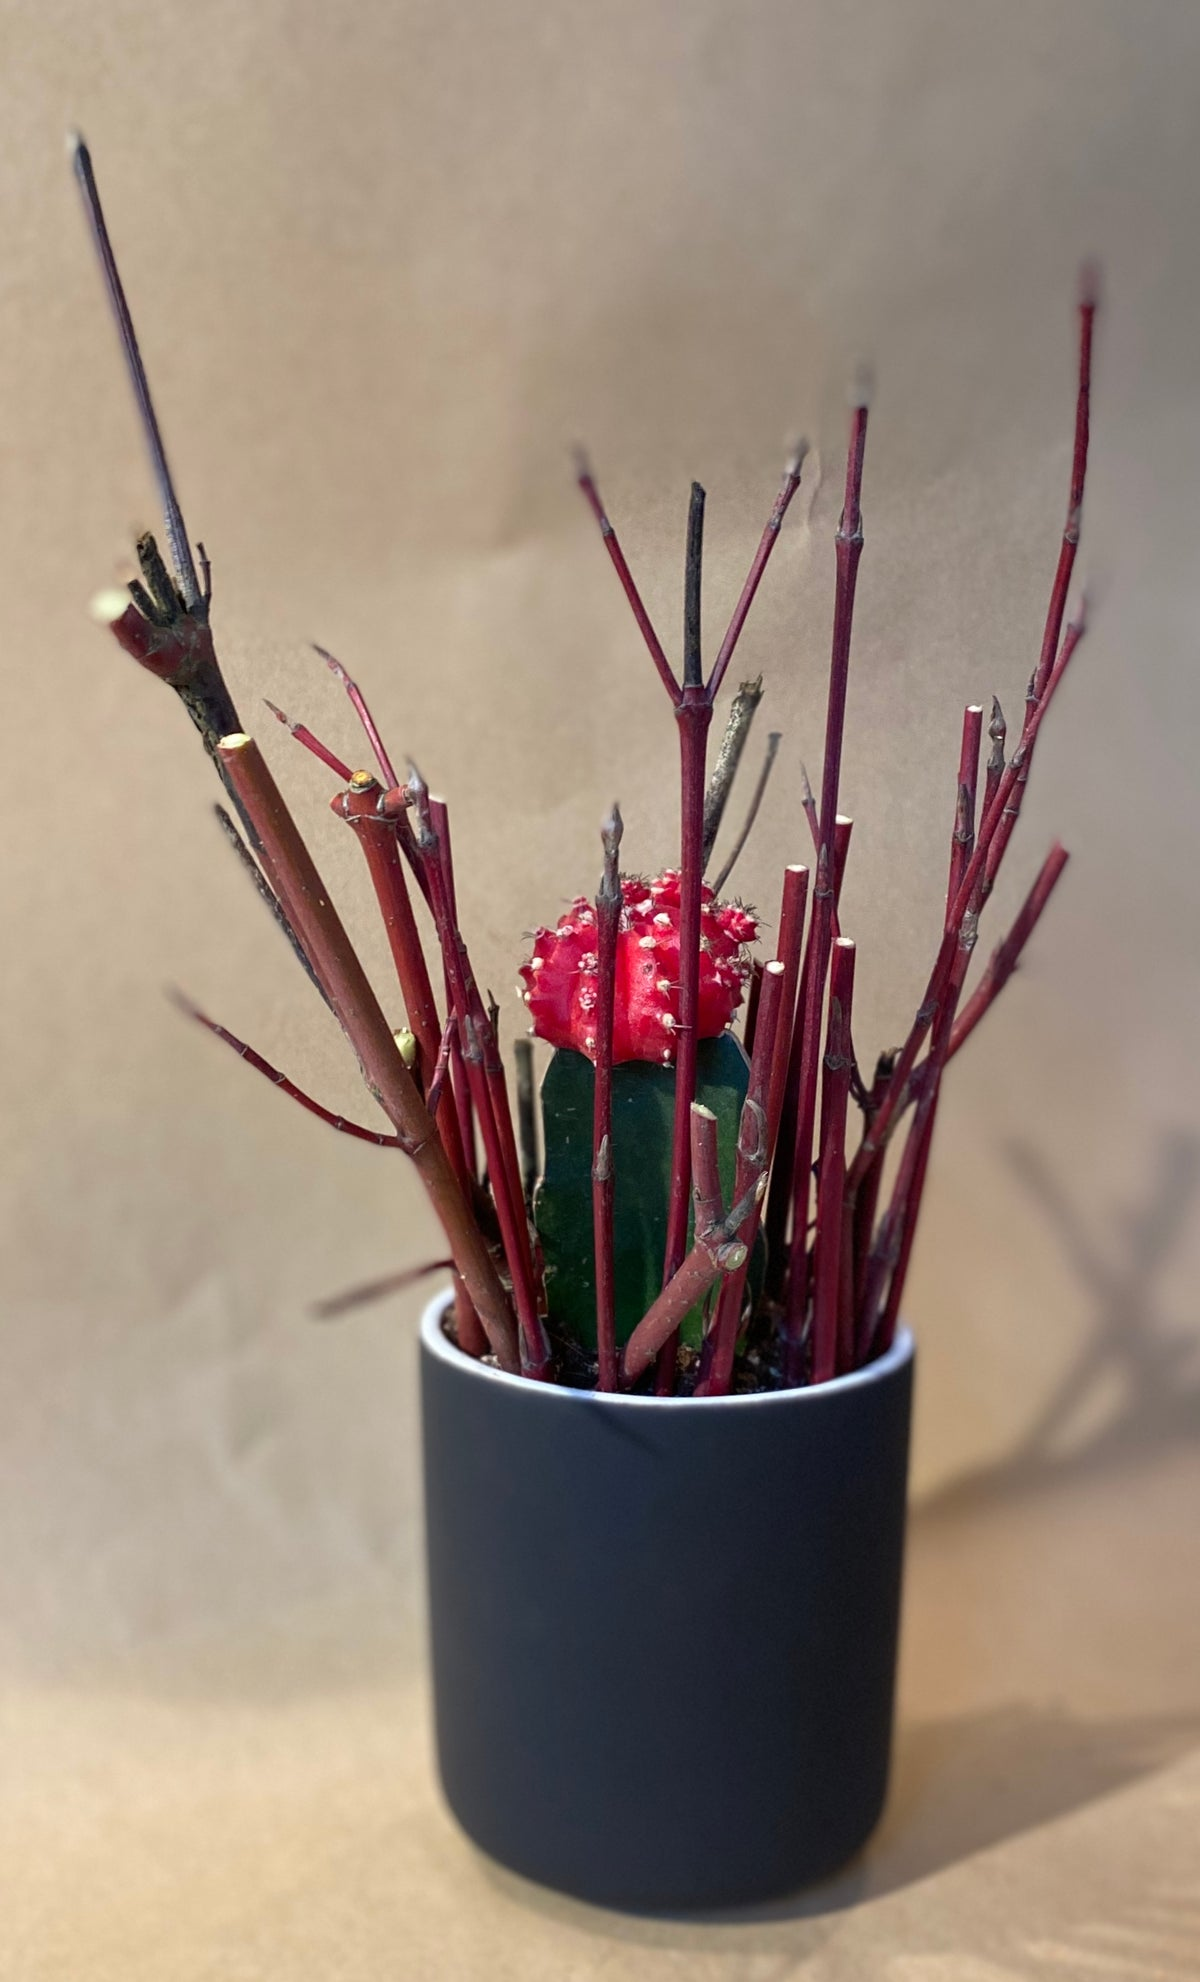 Cactus in Ceramic Container